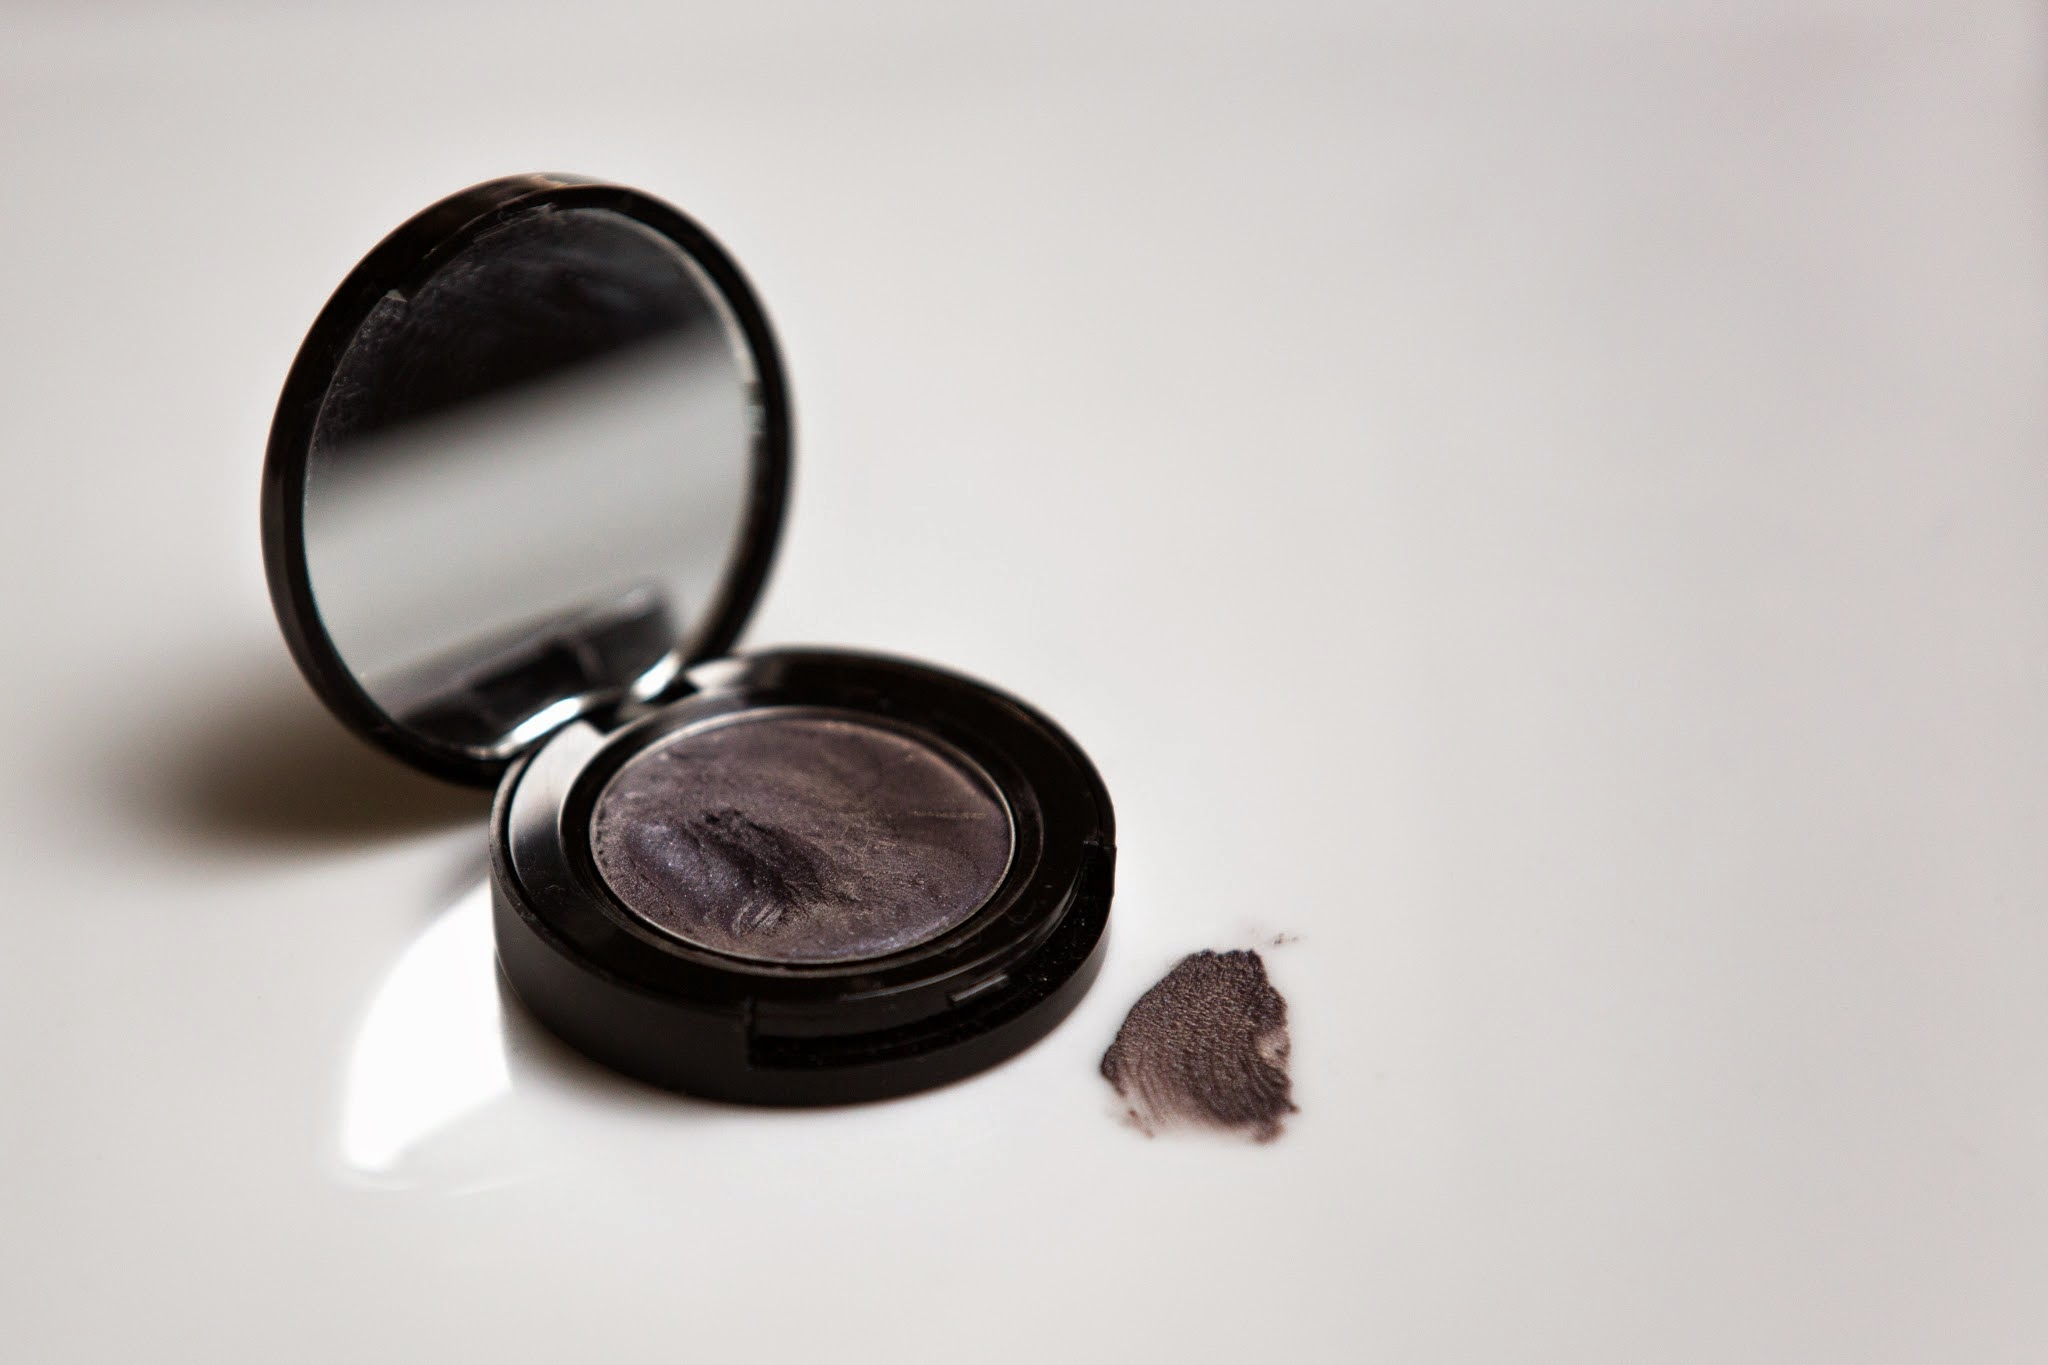 La Bella Figura Beauty Soothing Creme Eye Shadow in Damn Elvia /   Photograph by Casey Broadwate r